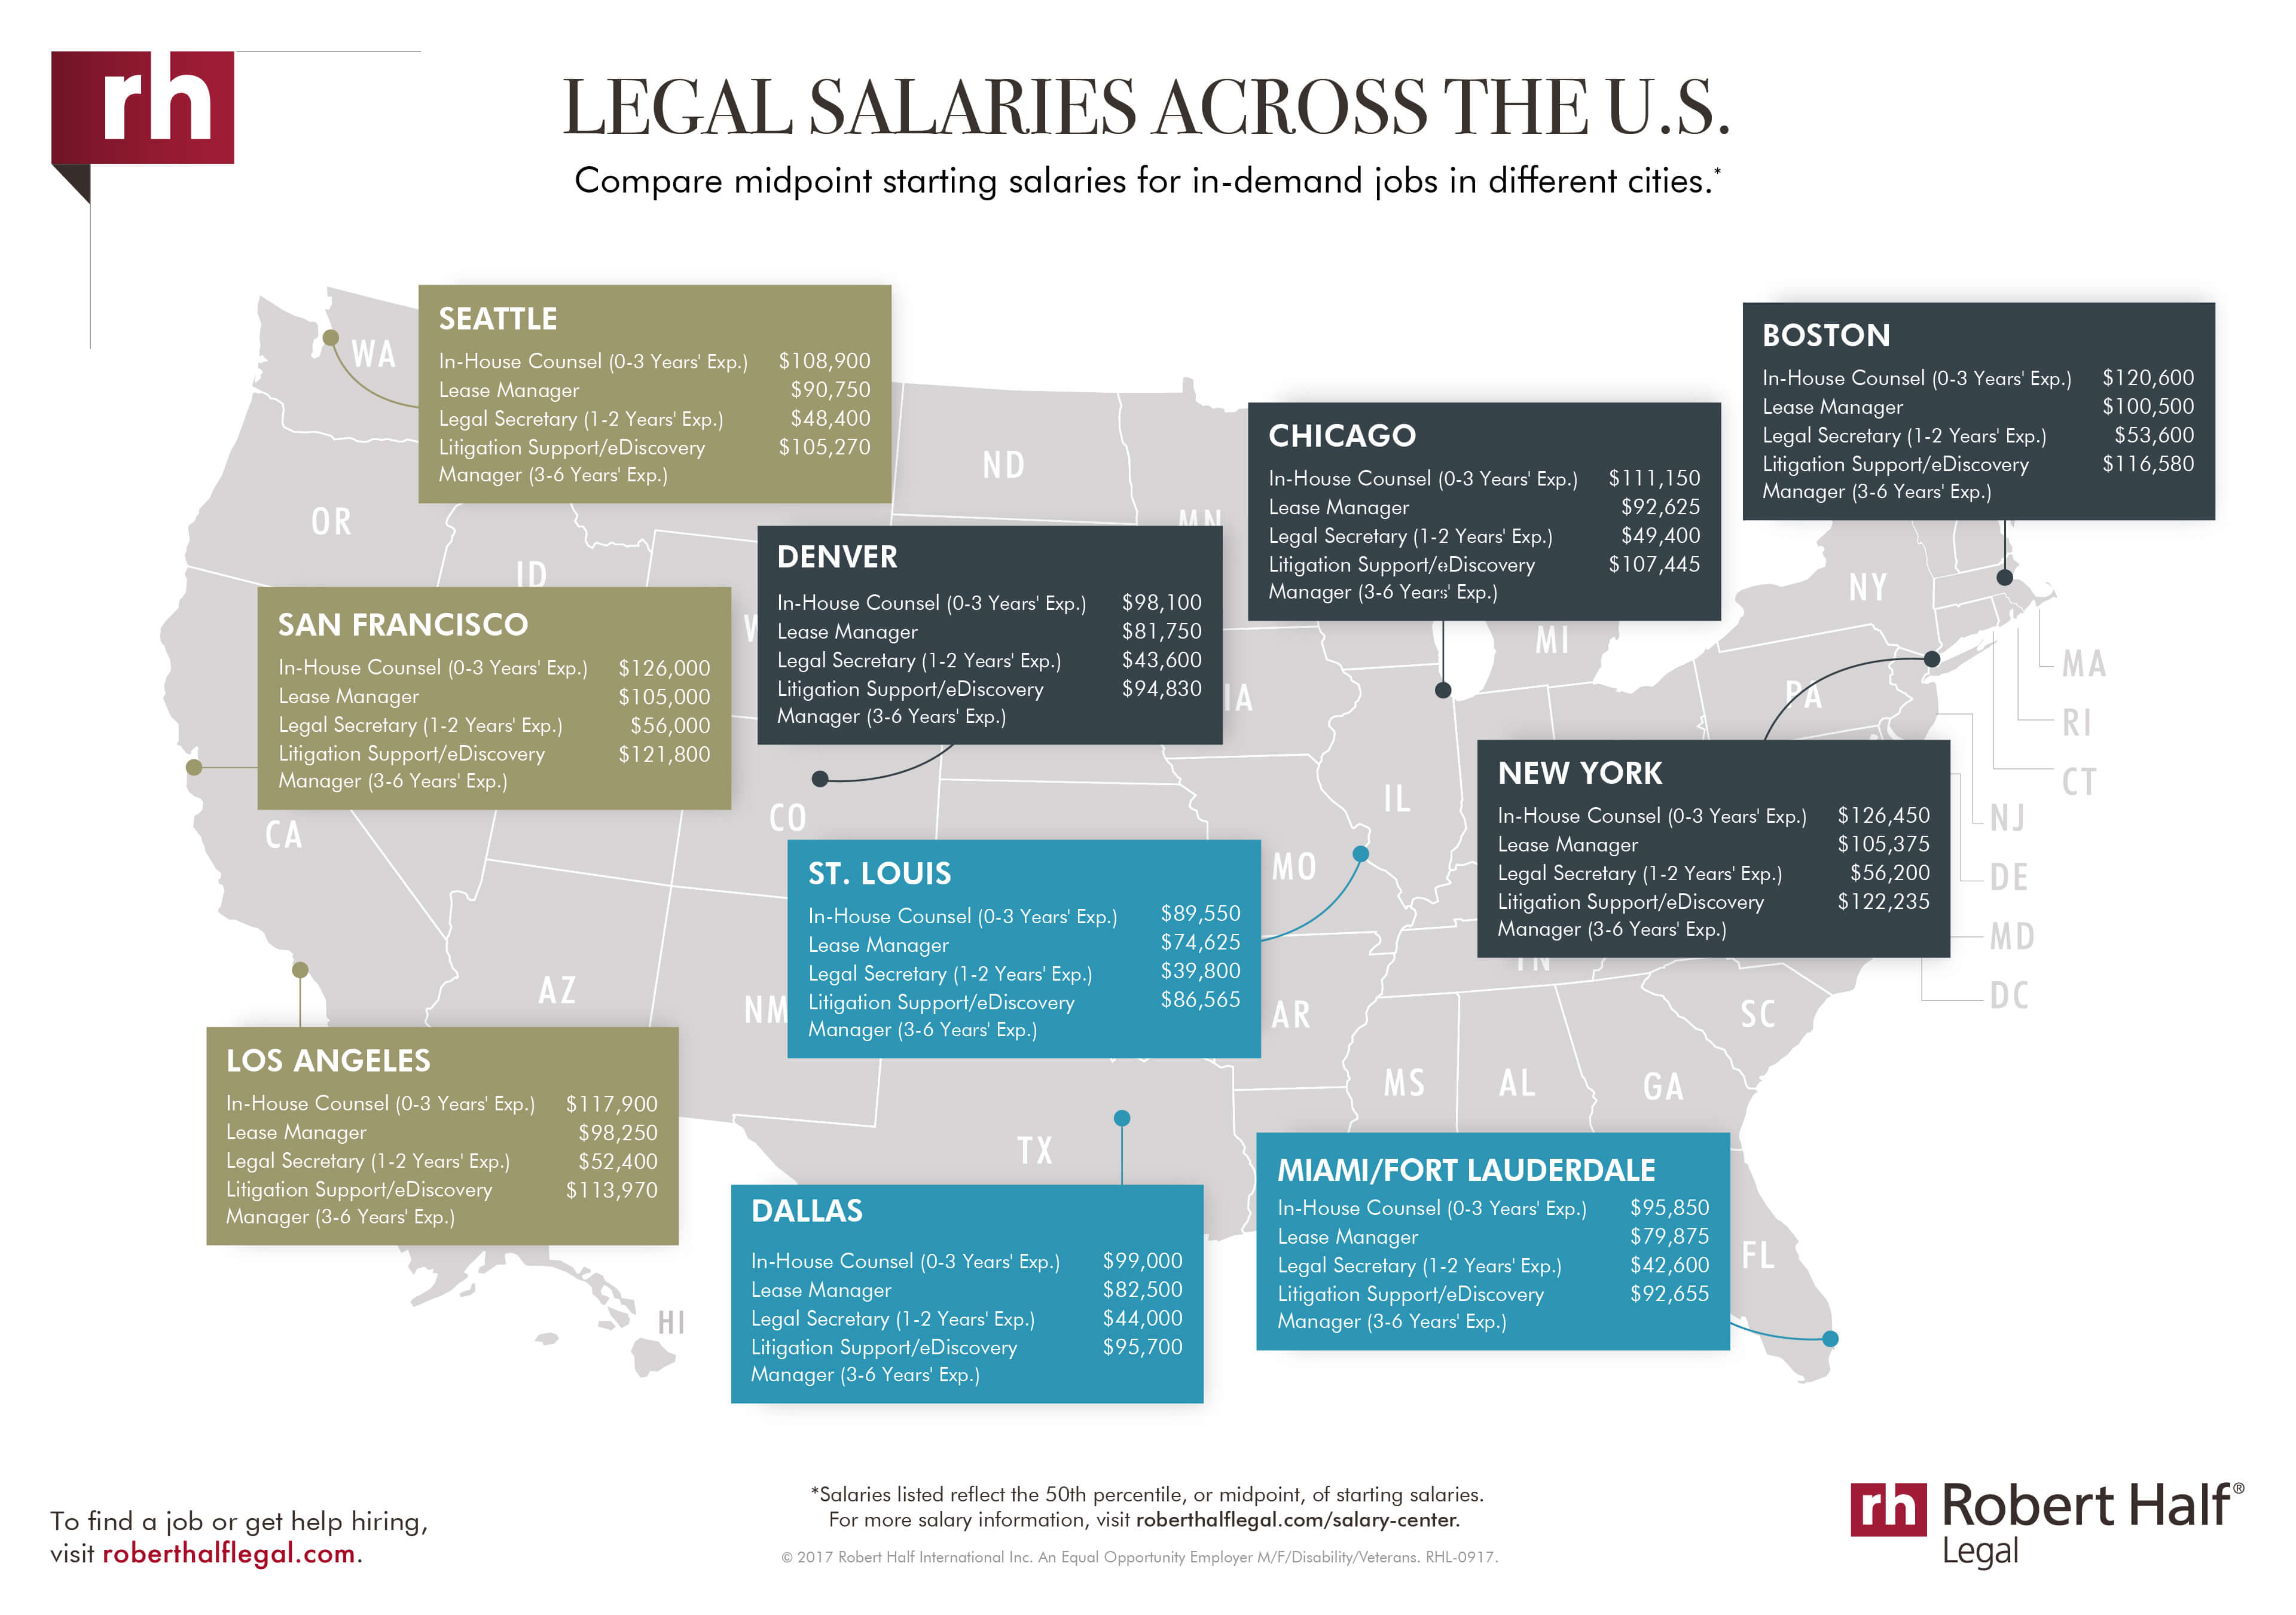 Legal Salaries | 2018 Salary Guide for Legal Professionals | Robert Half